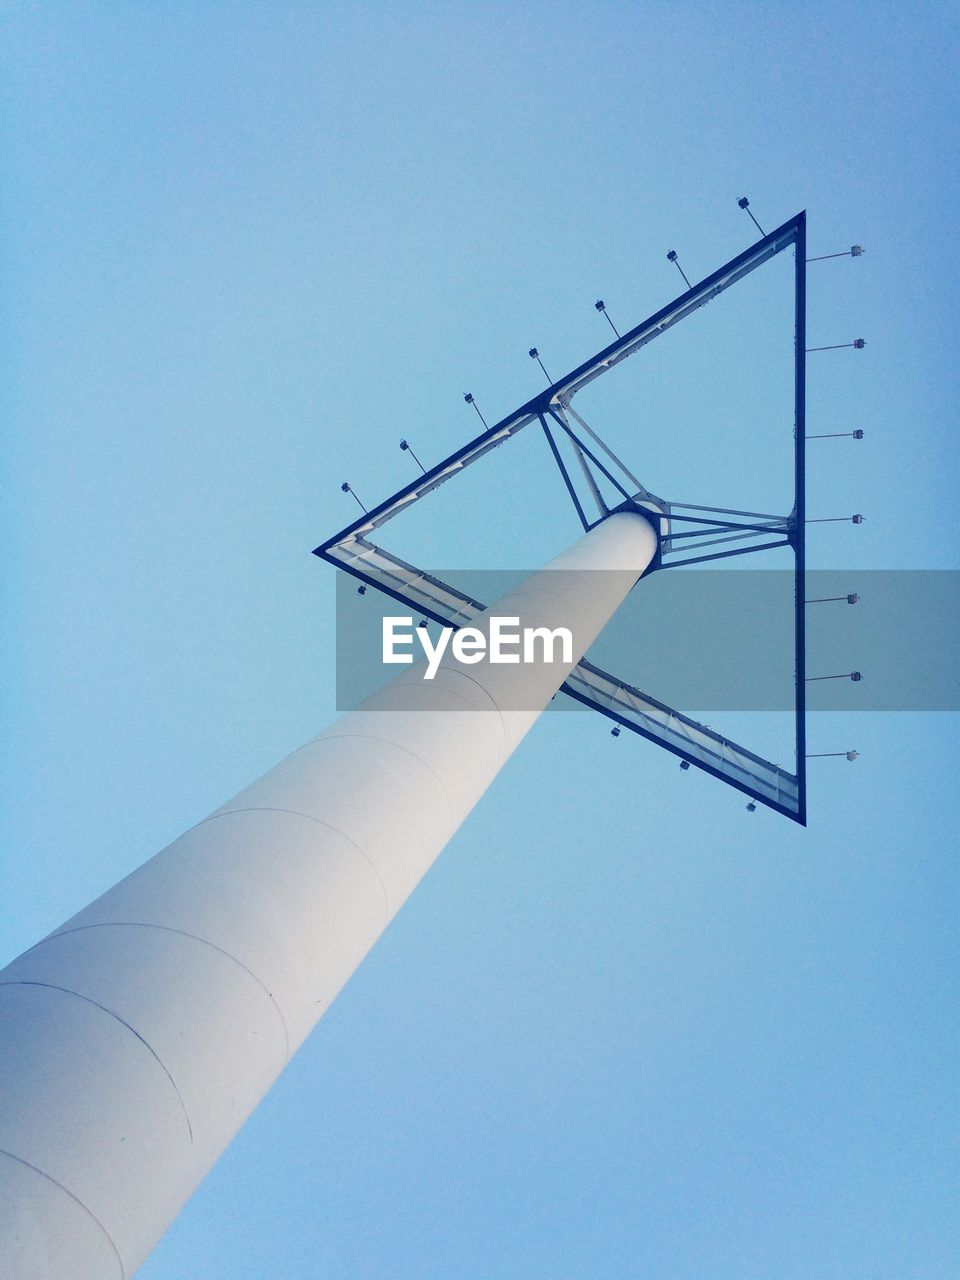 Low angle view of triangle shape billboard against clear blue sky